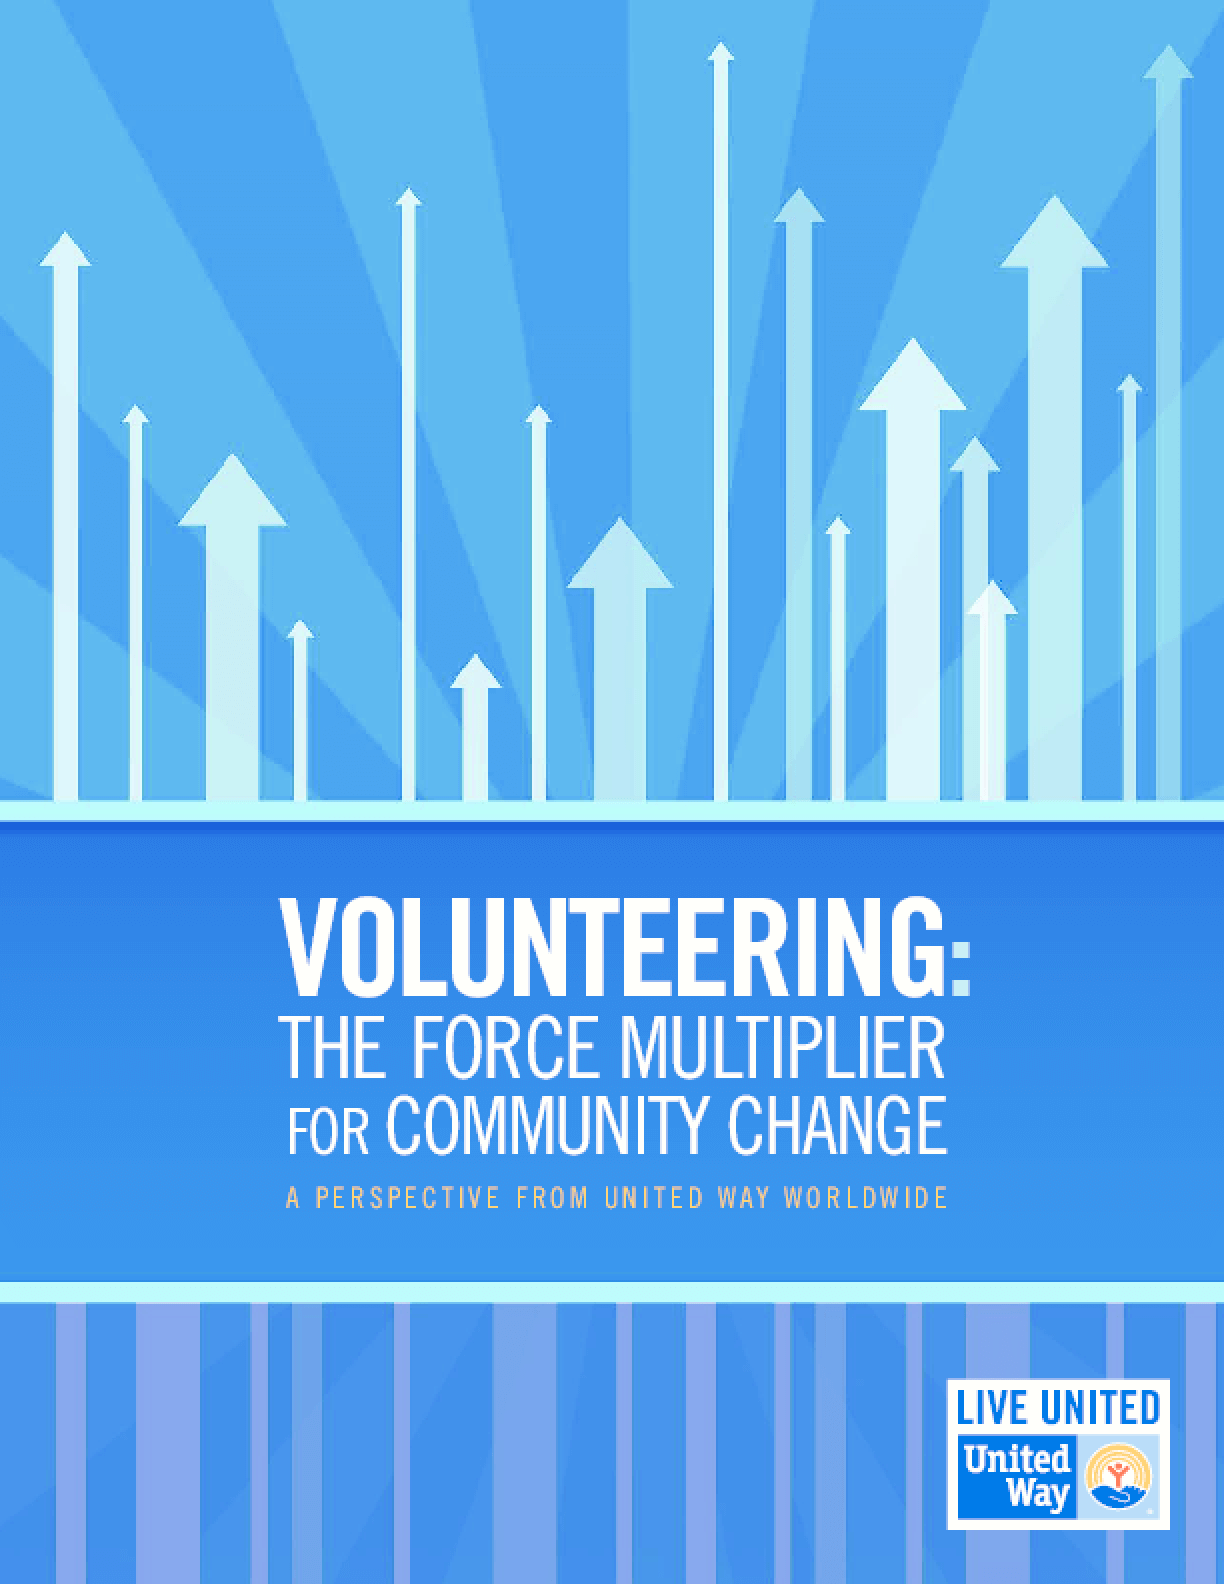 Volunteering: The Force Multiplier for Community Change